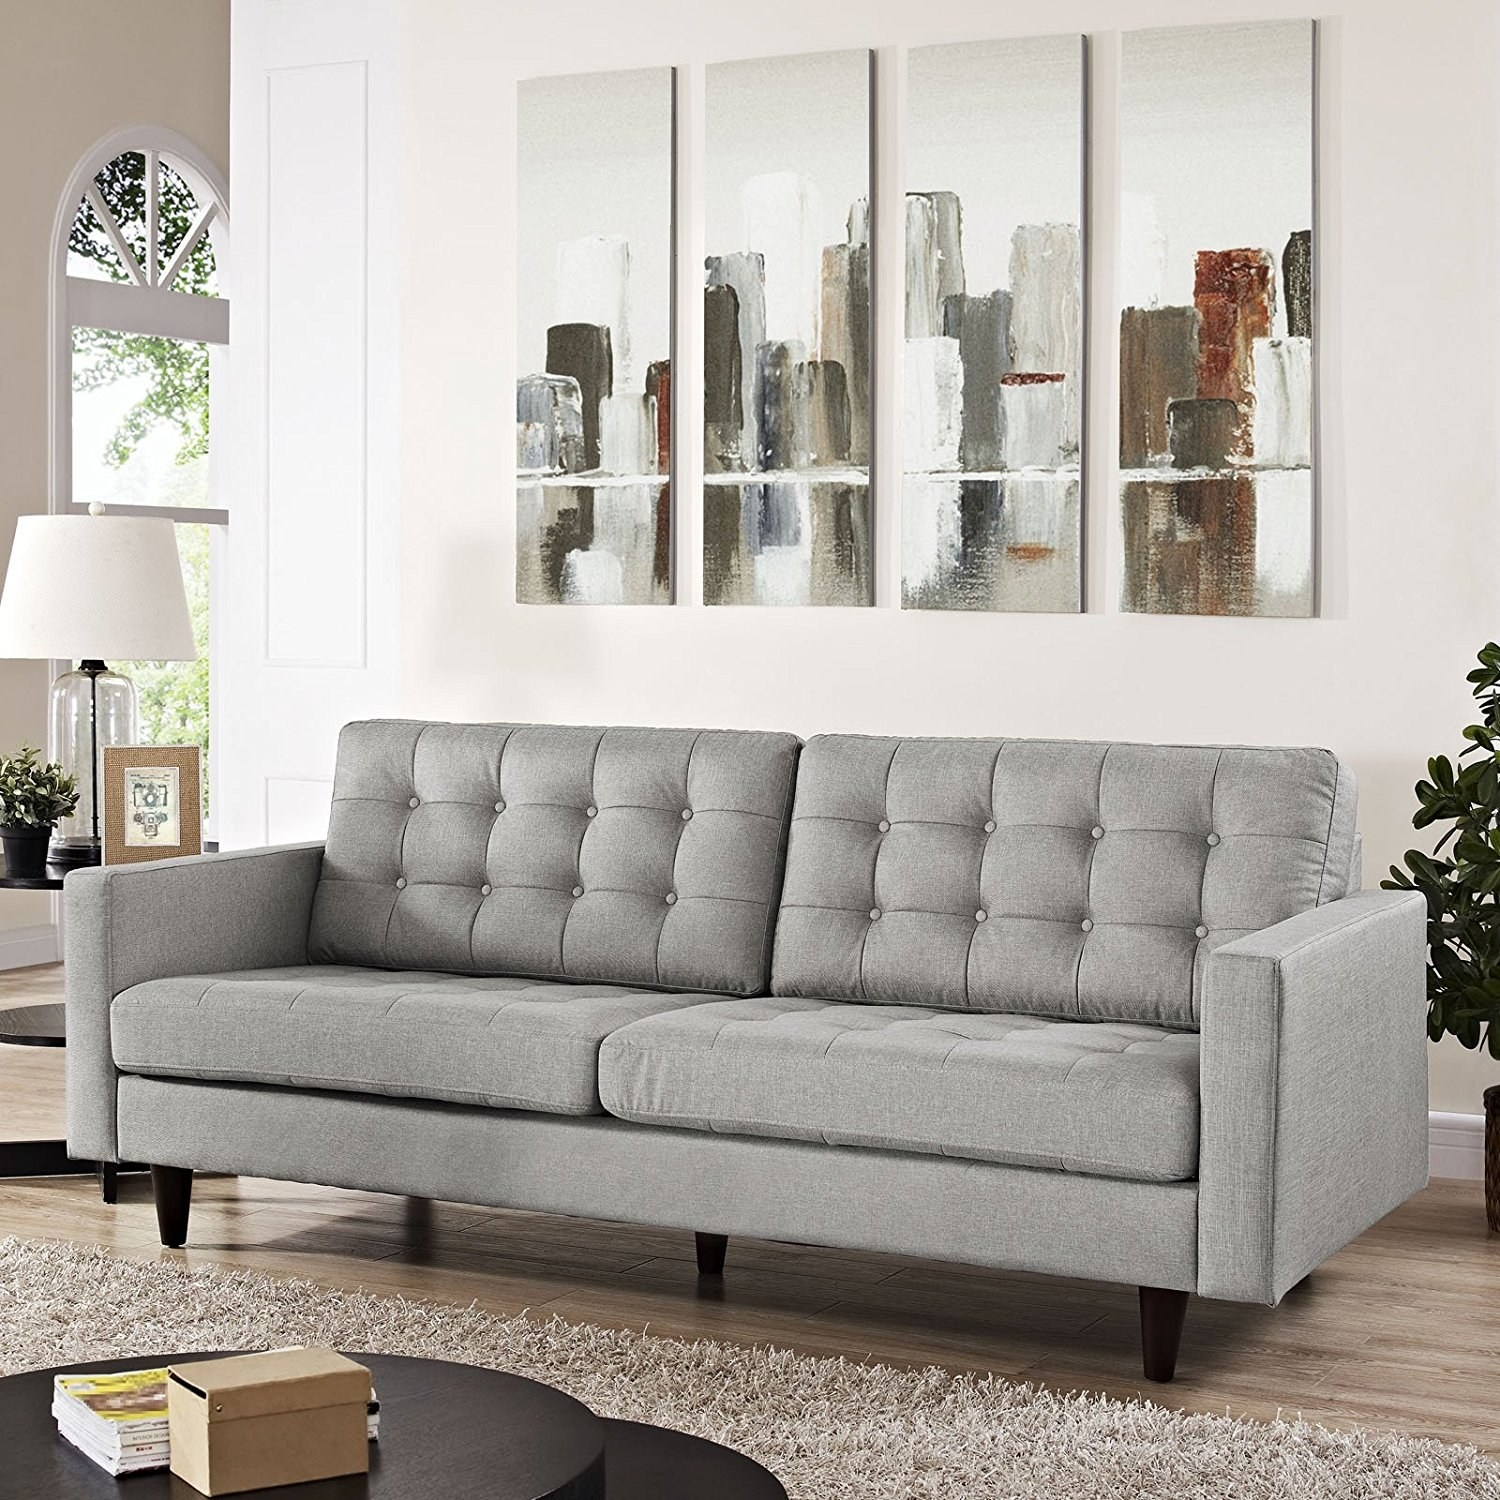 Superieur Styles: One Of The Biggest, If Not The Biggest, Selections Of Sofas Online